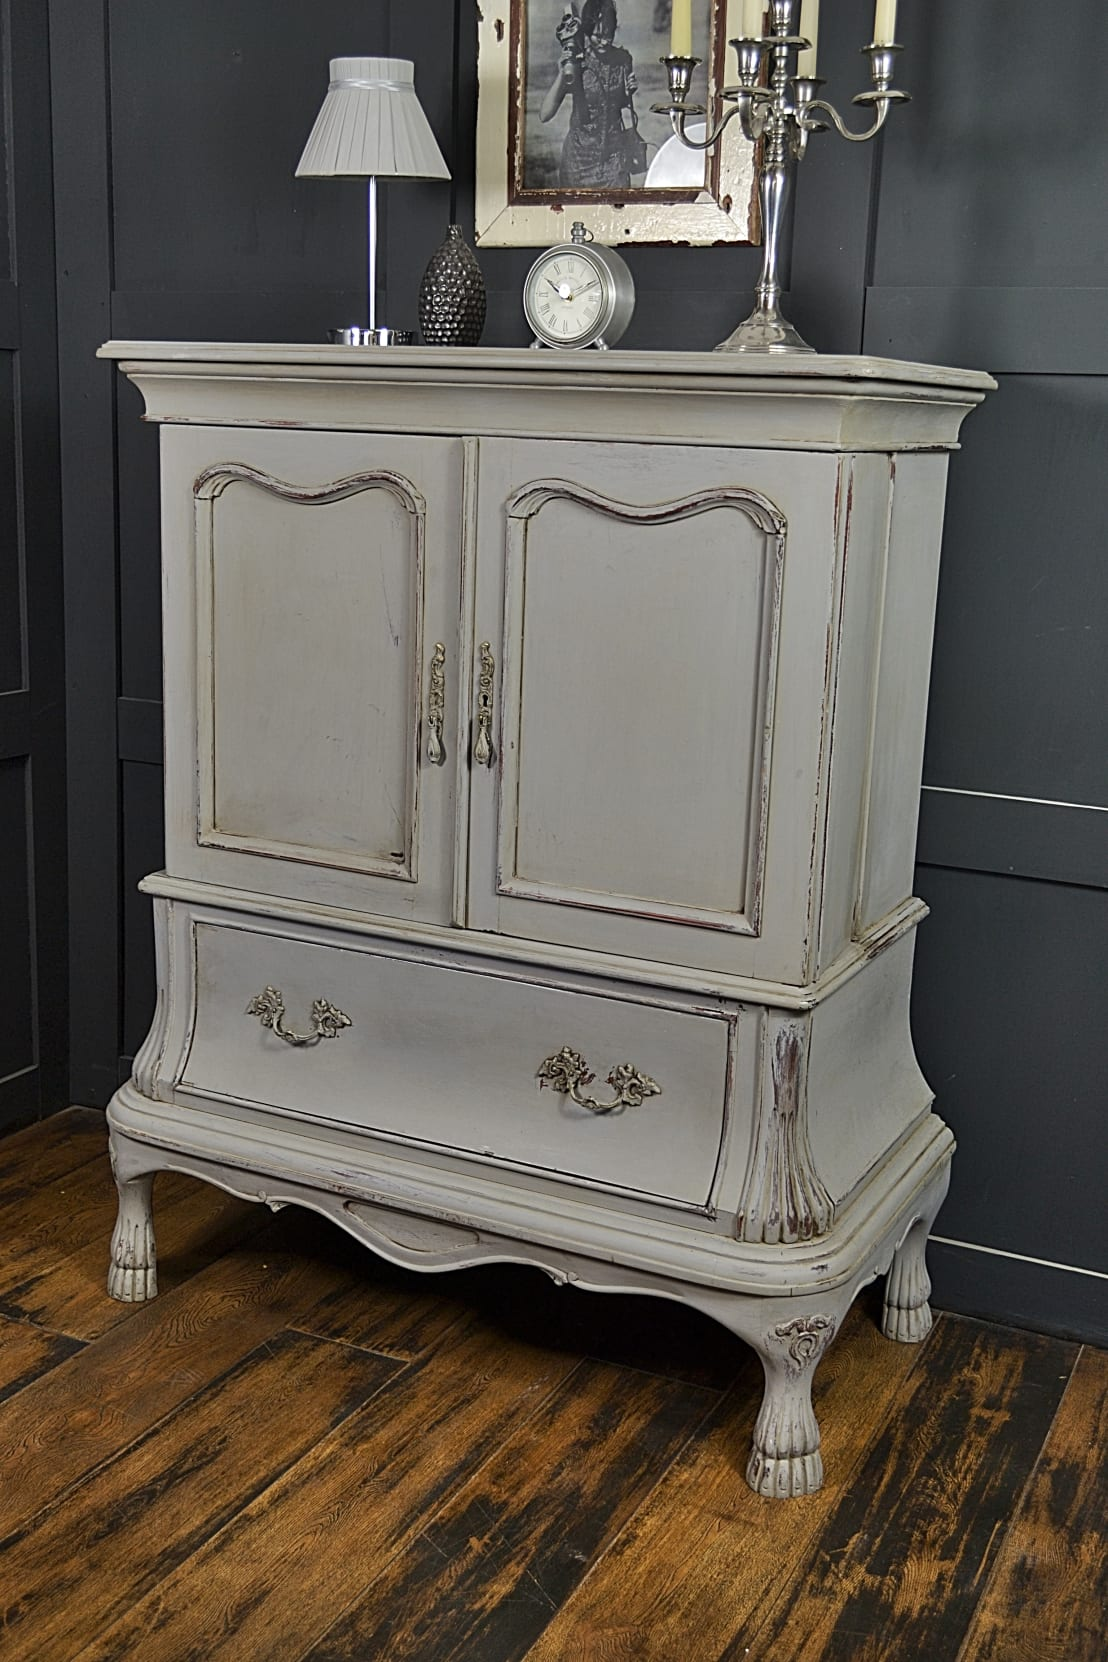 paris grey shabby chic french drinks cabinet by the treasure trove shabby chic vintage. Black Bedroom Furniture Sets. Home Design Ideas